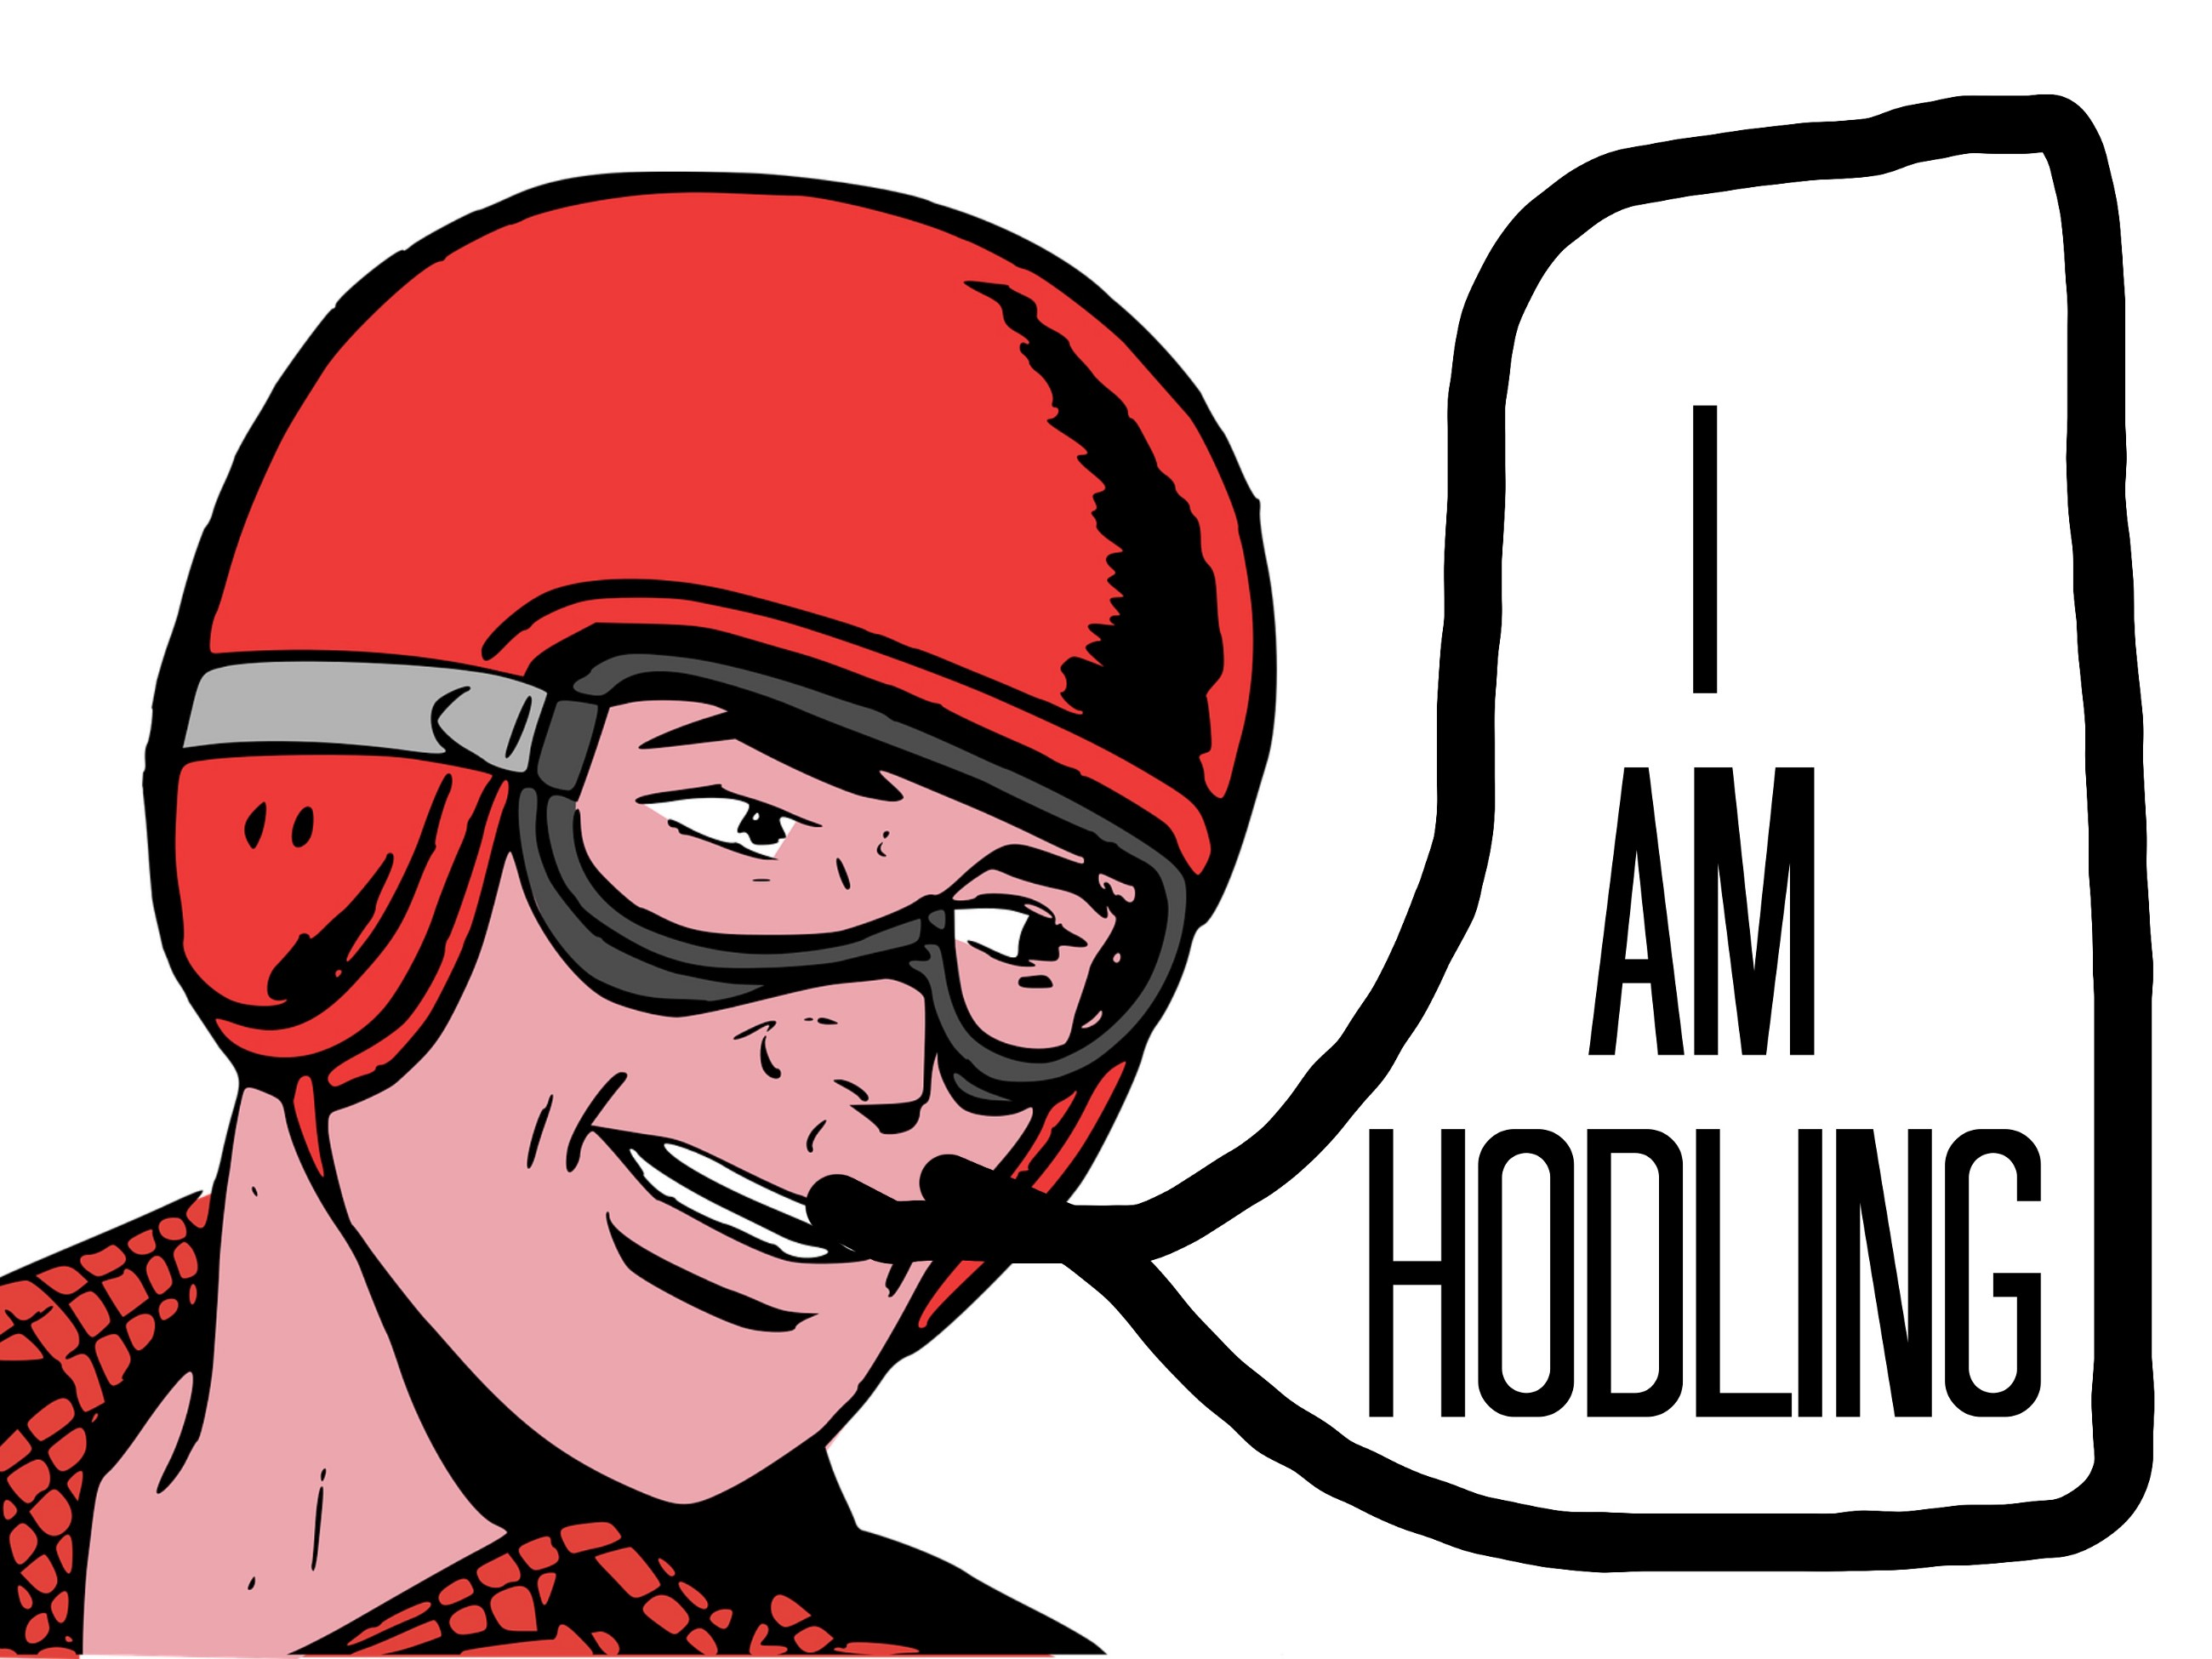 /whats-the-backstory-on-the-word-hodl-27756392b698 feature image